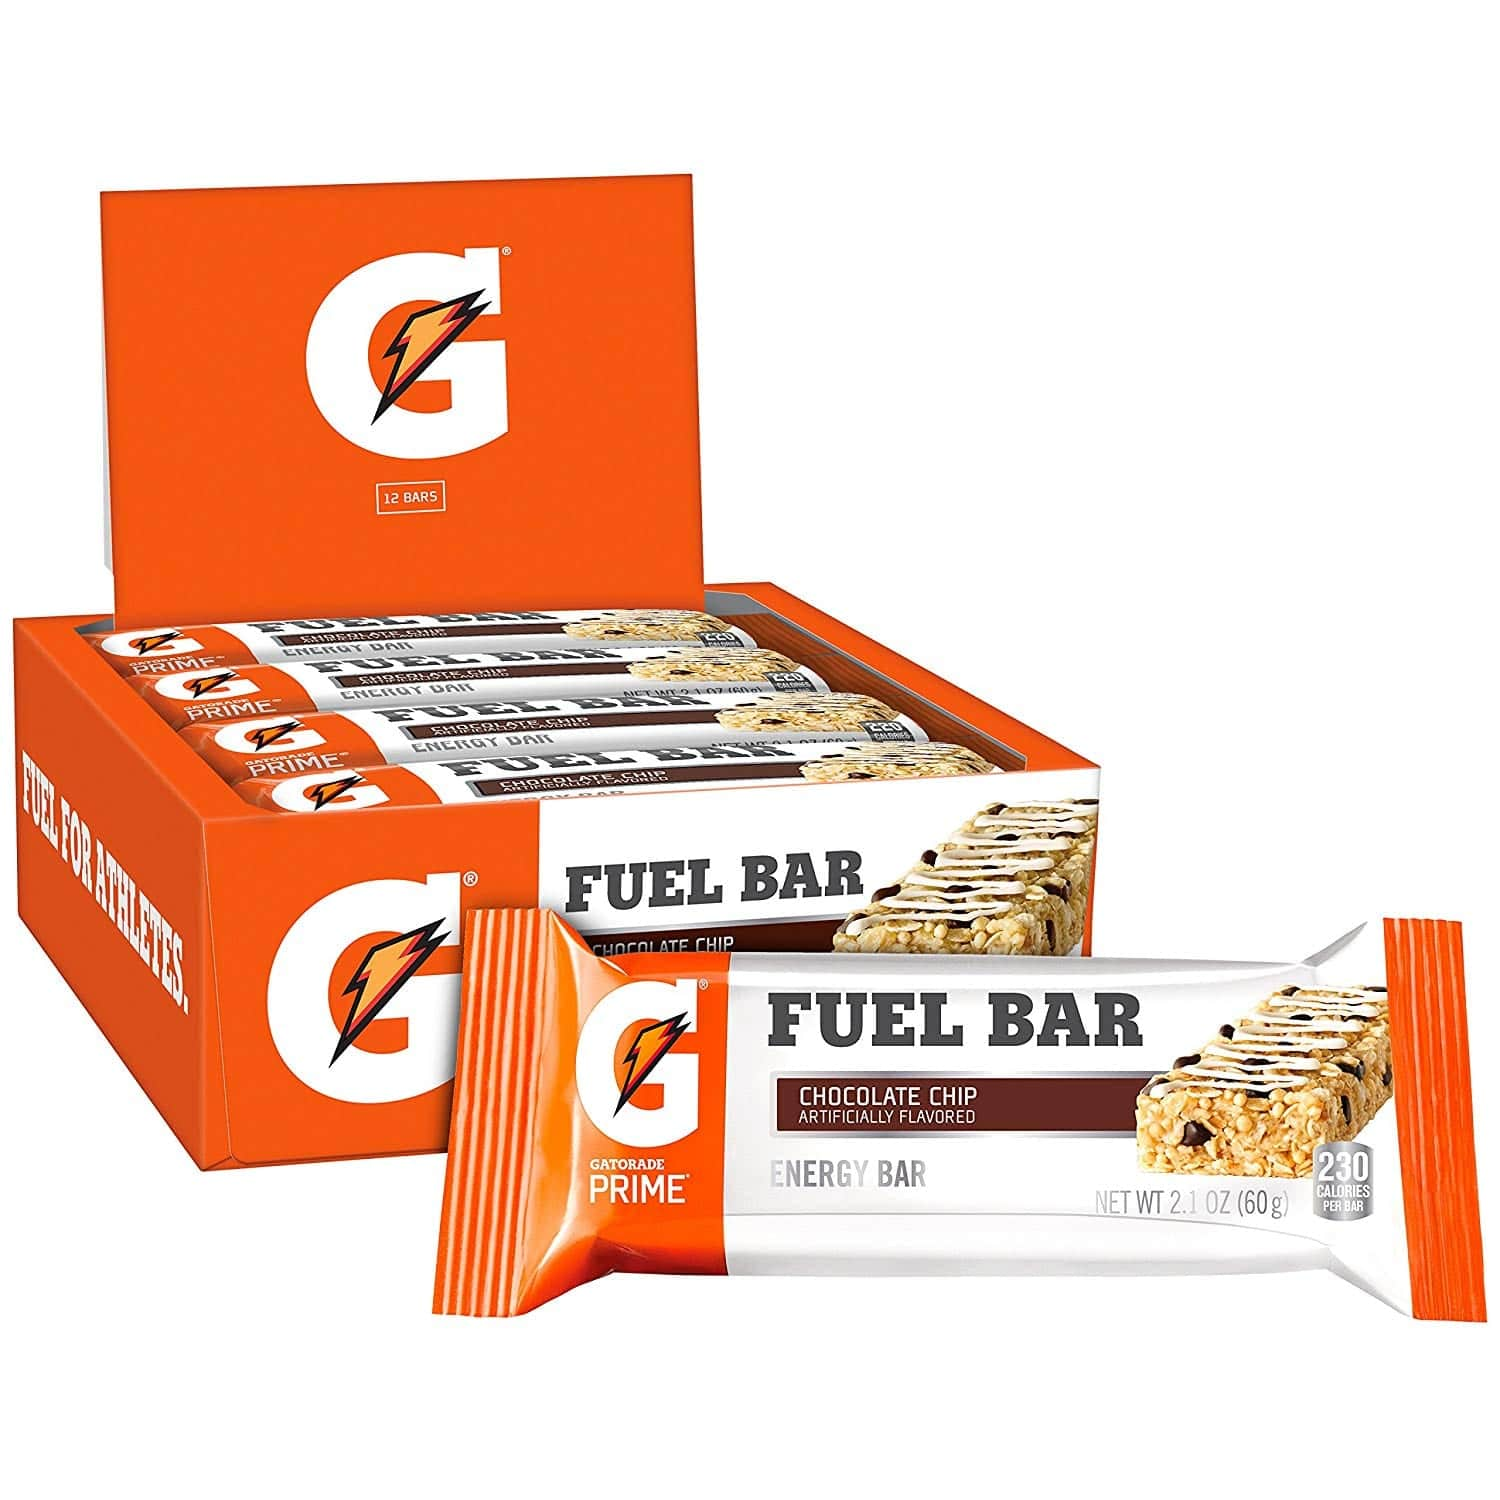 Gatorade Prime Fuel Bar